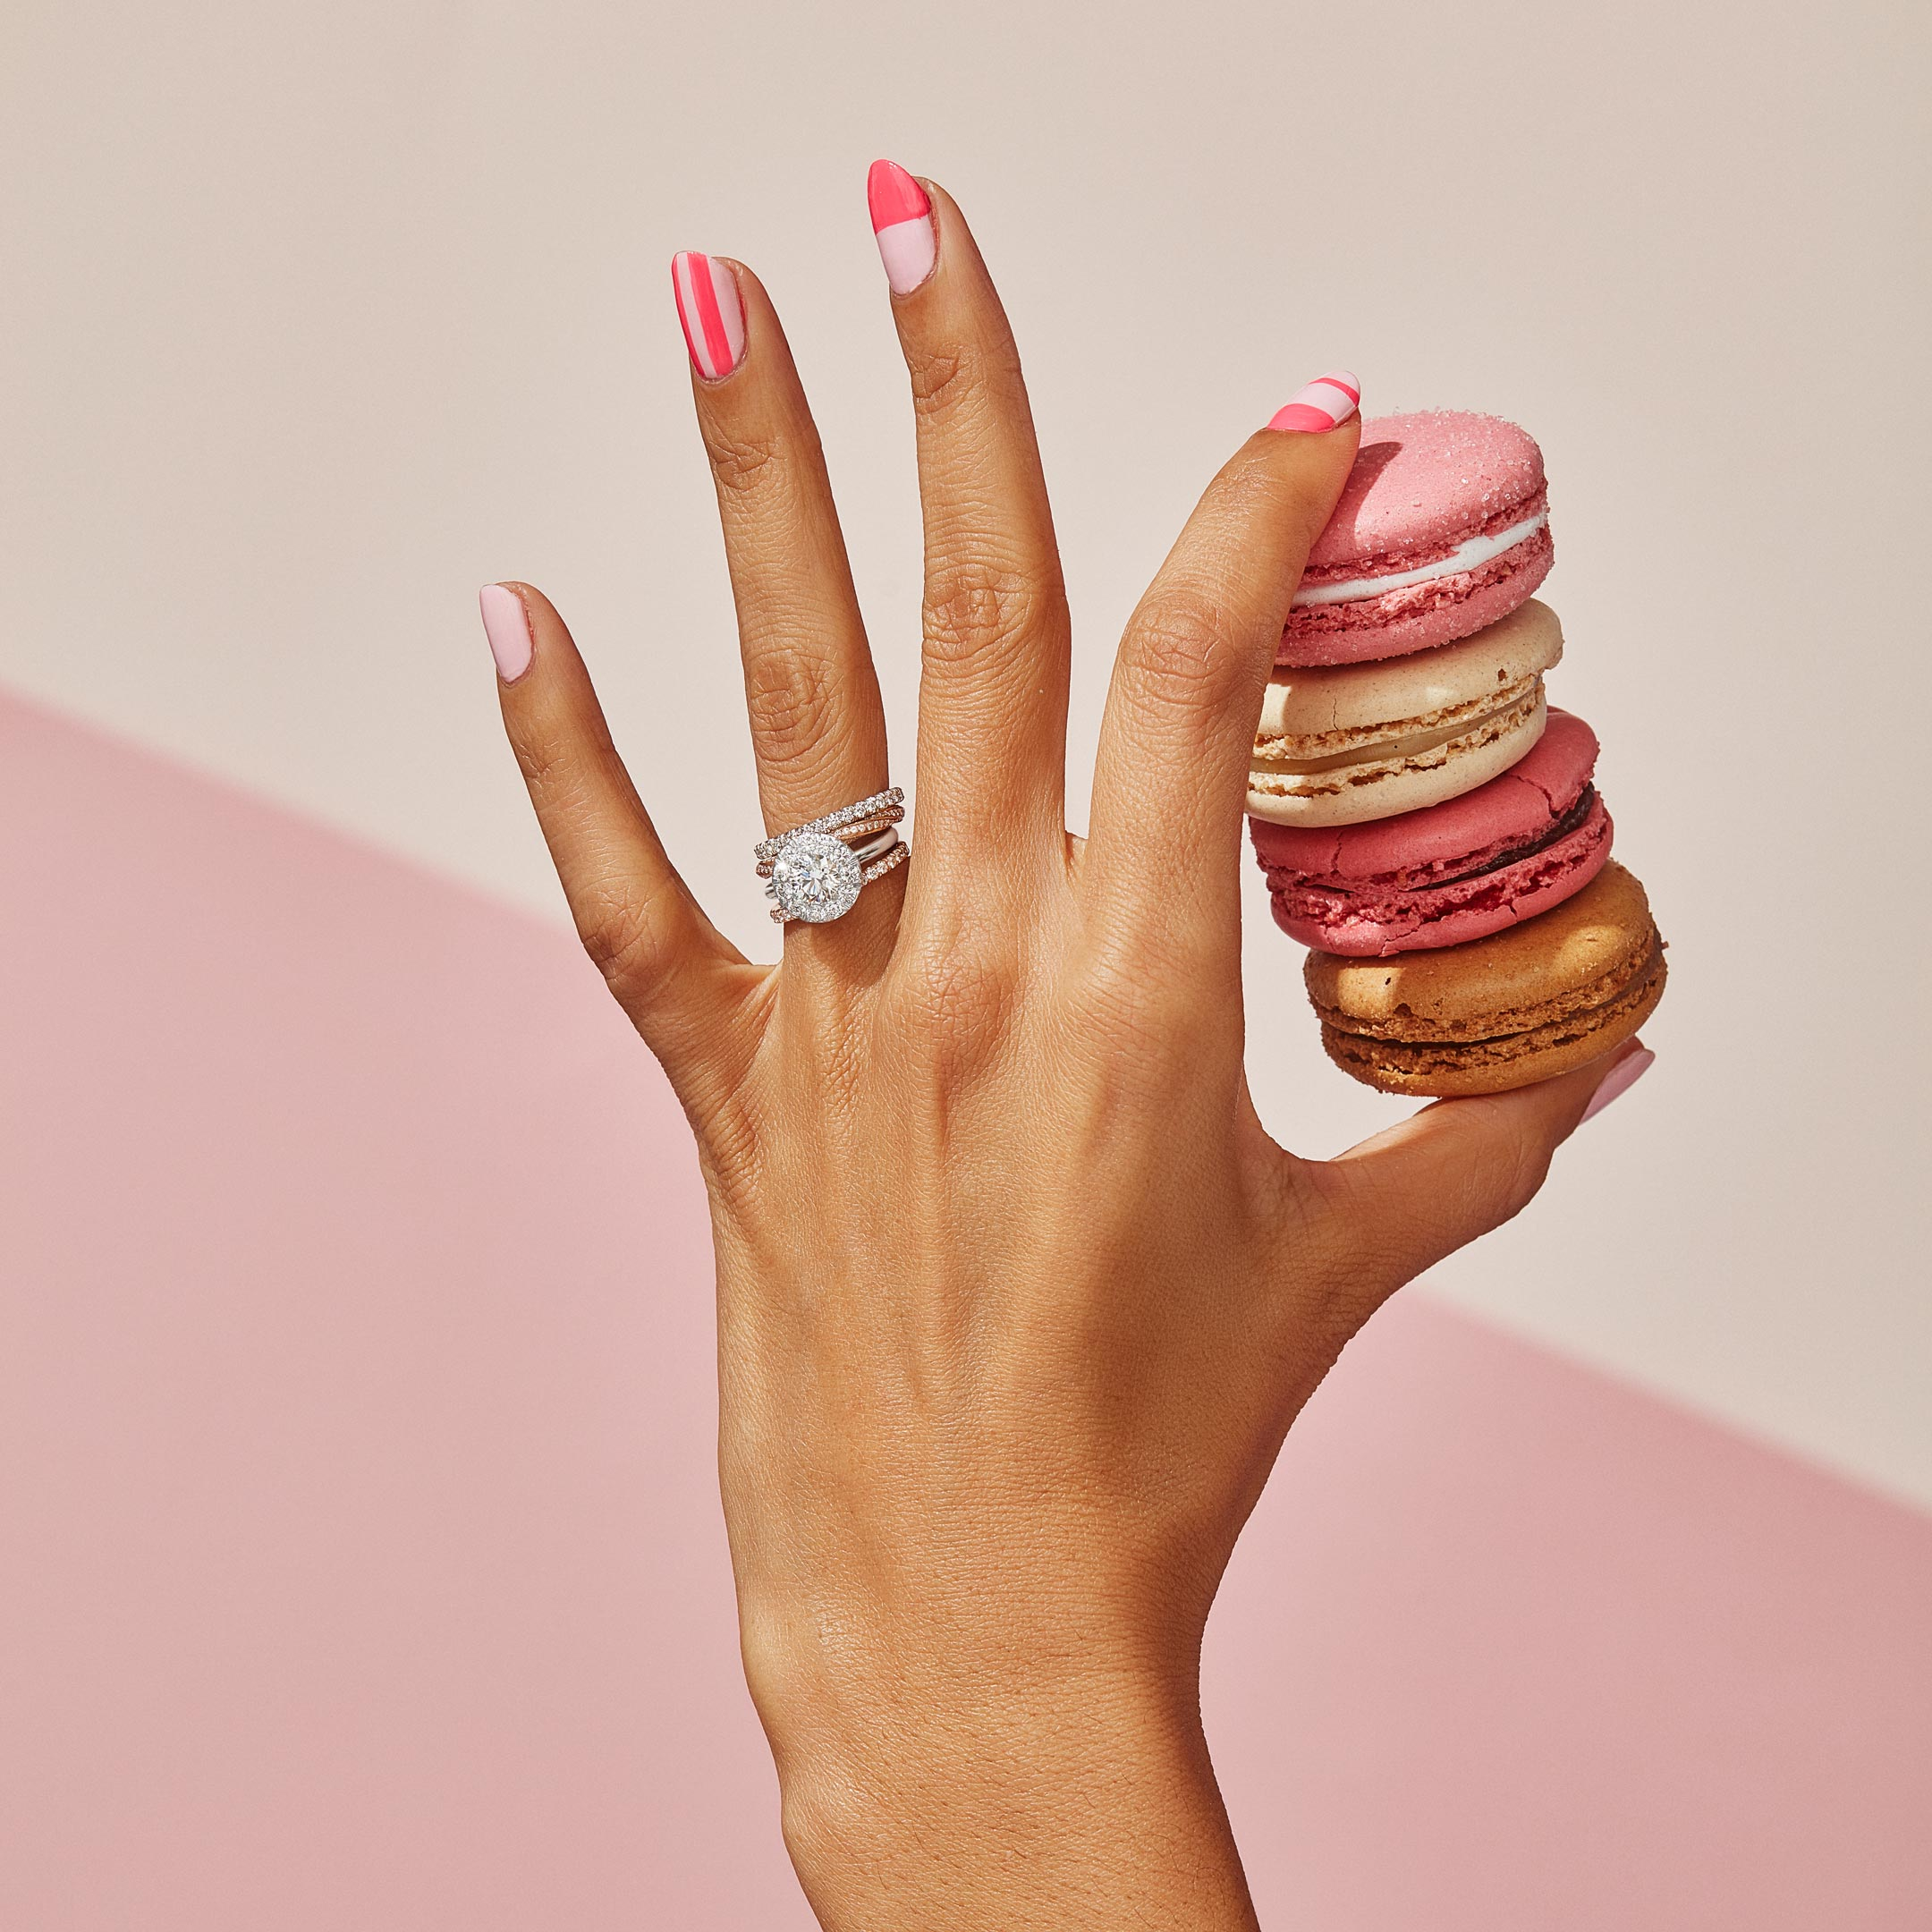 Colette Round Brilliant Seamless Solitaire™ Engagement Ring with a solid band in Platinum Hand with Macaroons Lifestyle by Oui by Jean DoussetColette Round Brilliant Seamless Solitaire™ Engagement Ring with a solid band in Platinum by Oui by Jean Dousset